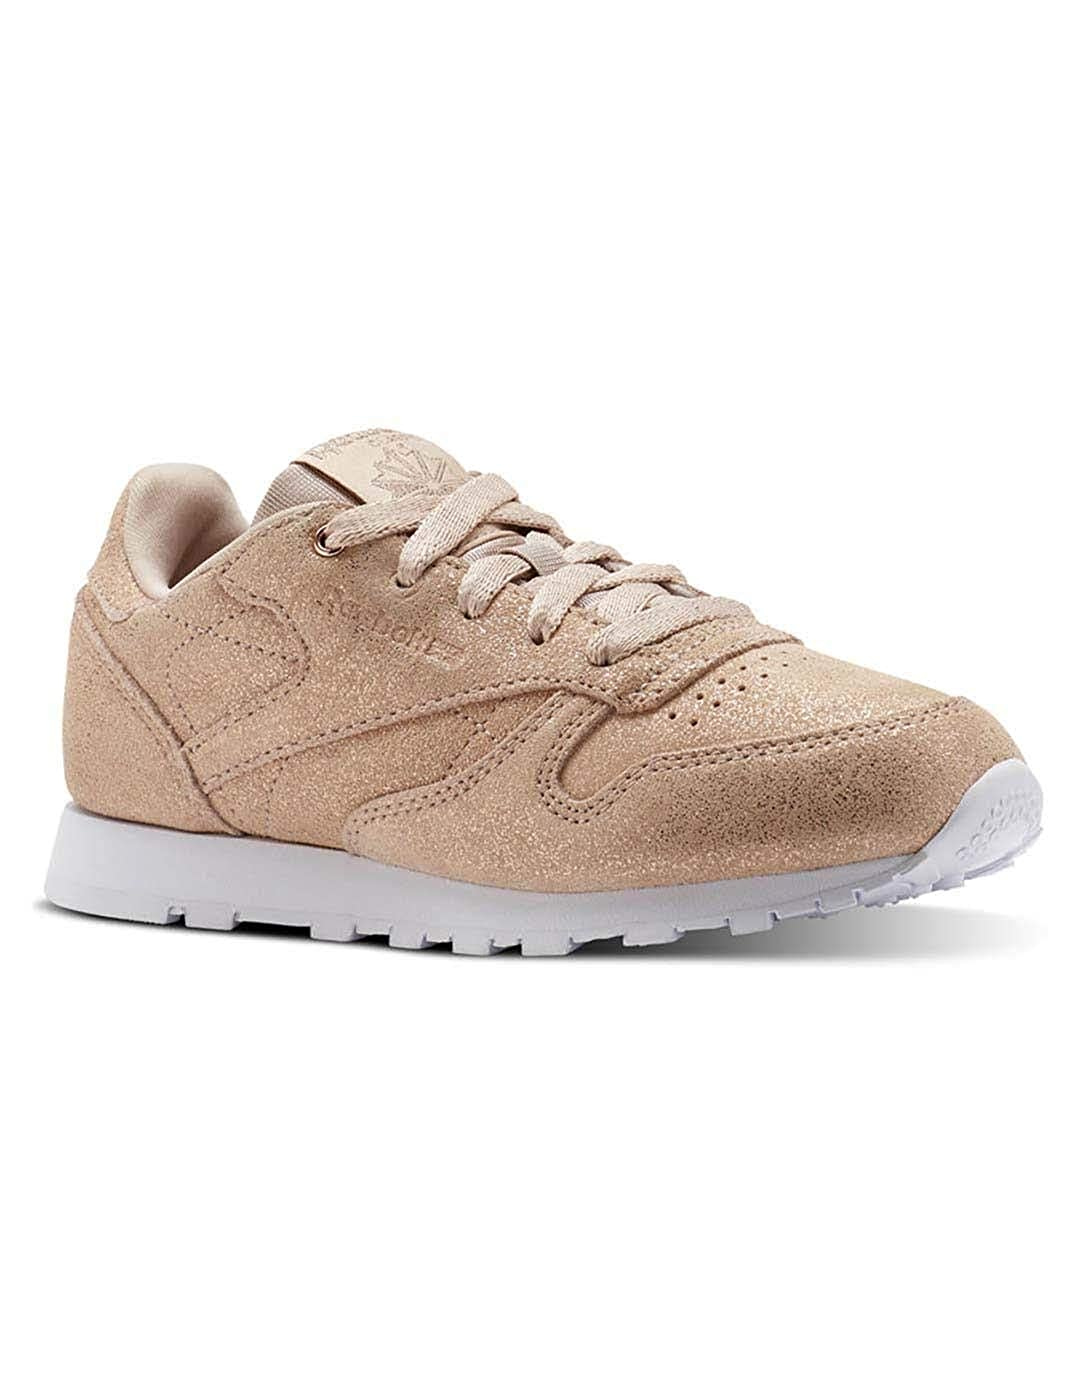 ca4732950630 Reebok Classic Leather, Chaussures de Fitness Fille